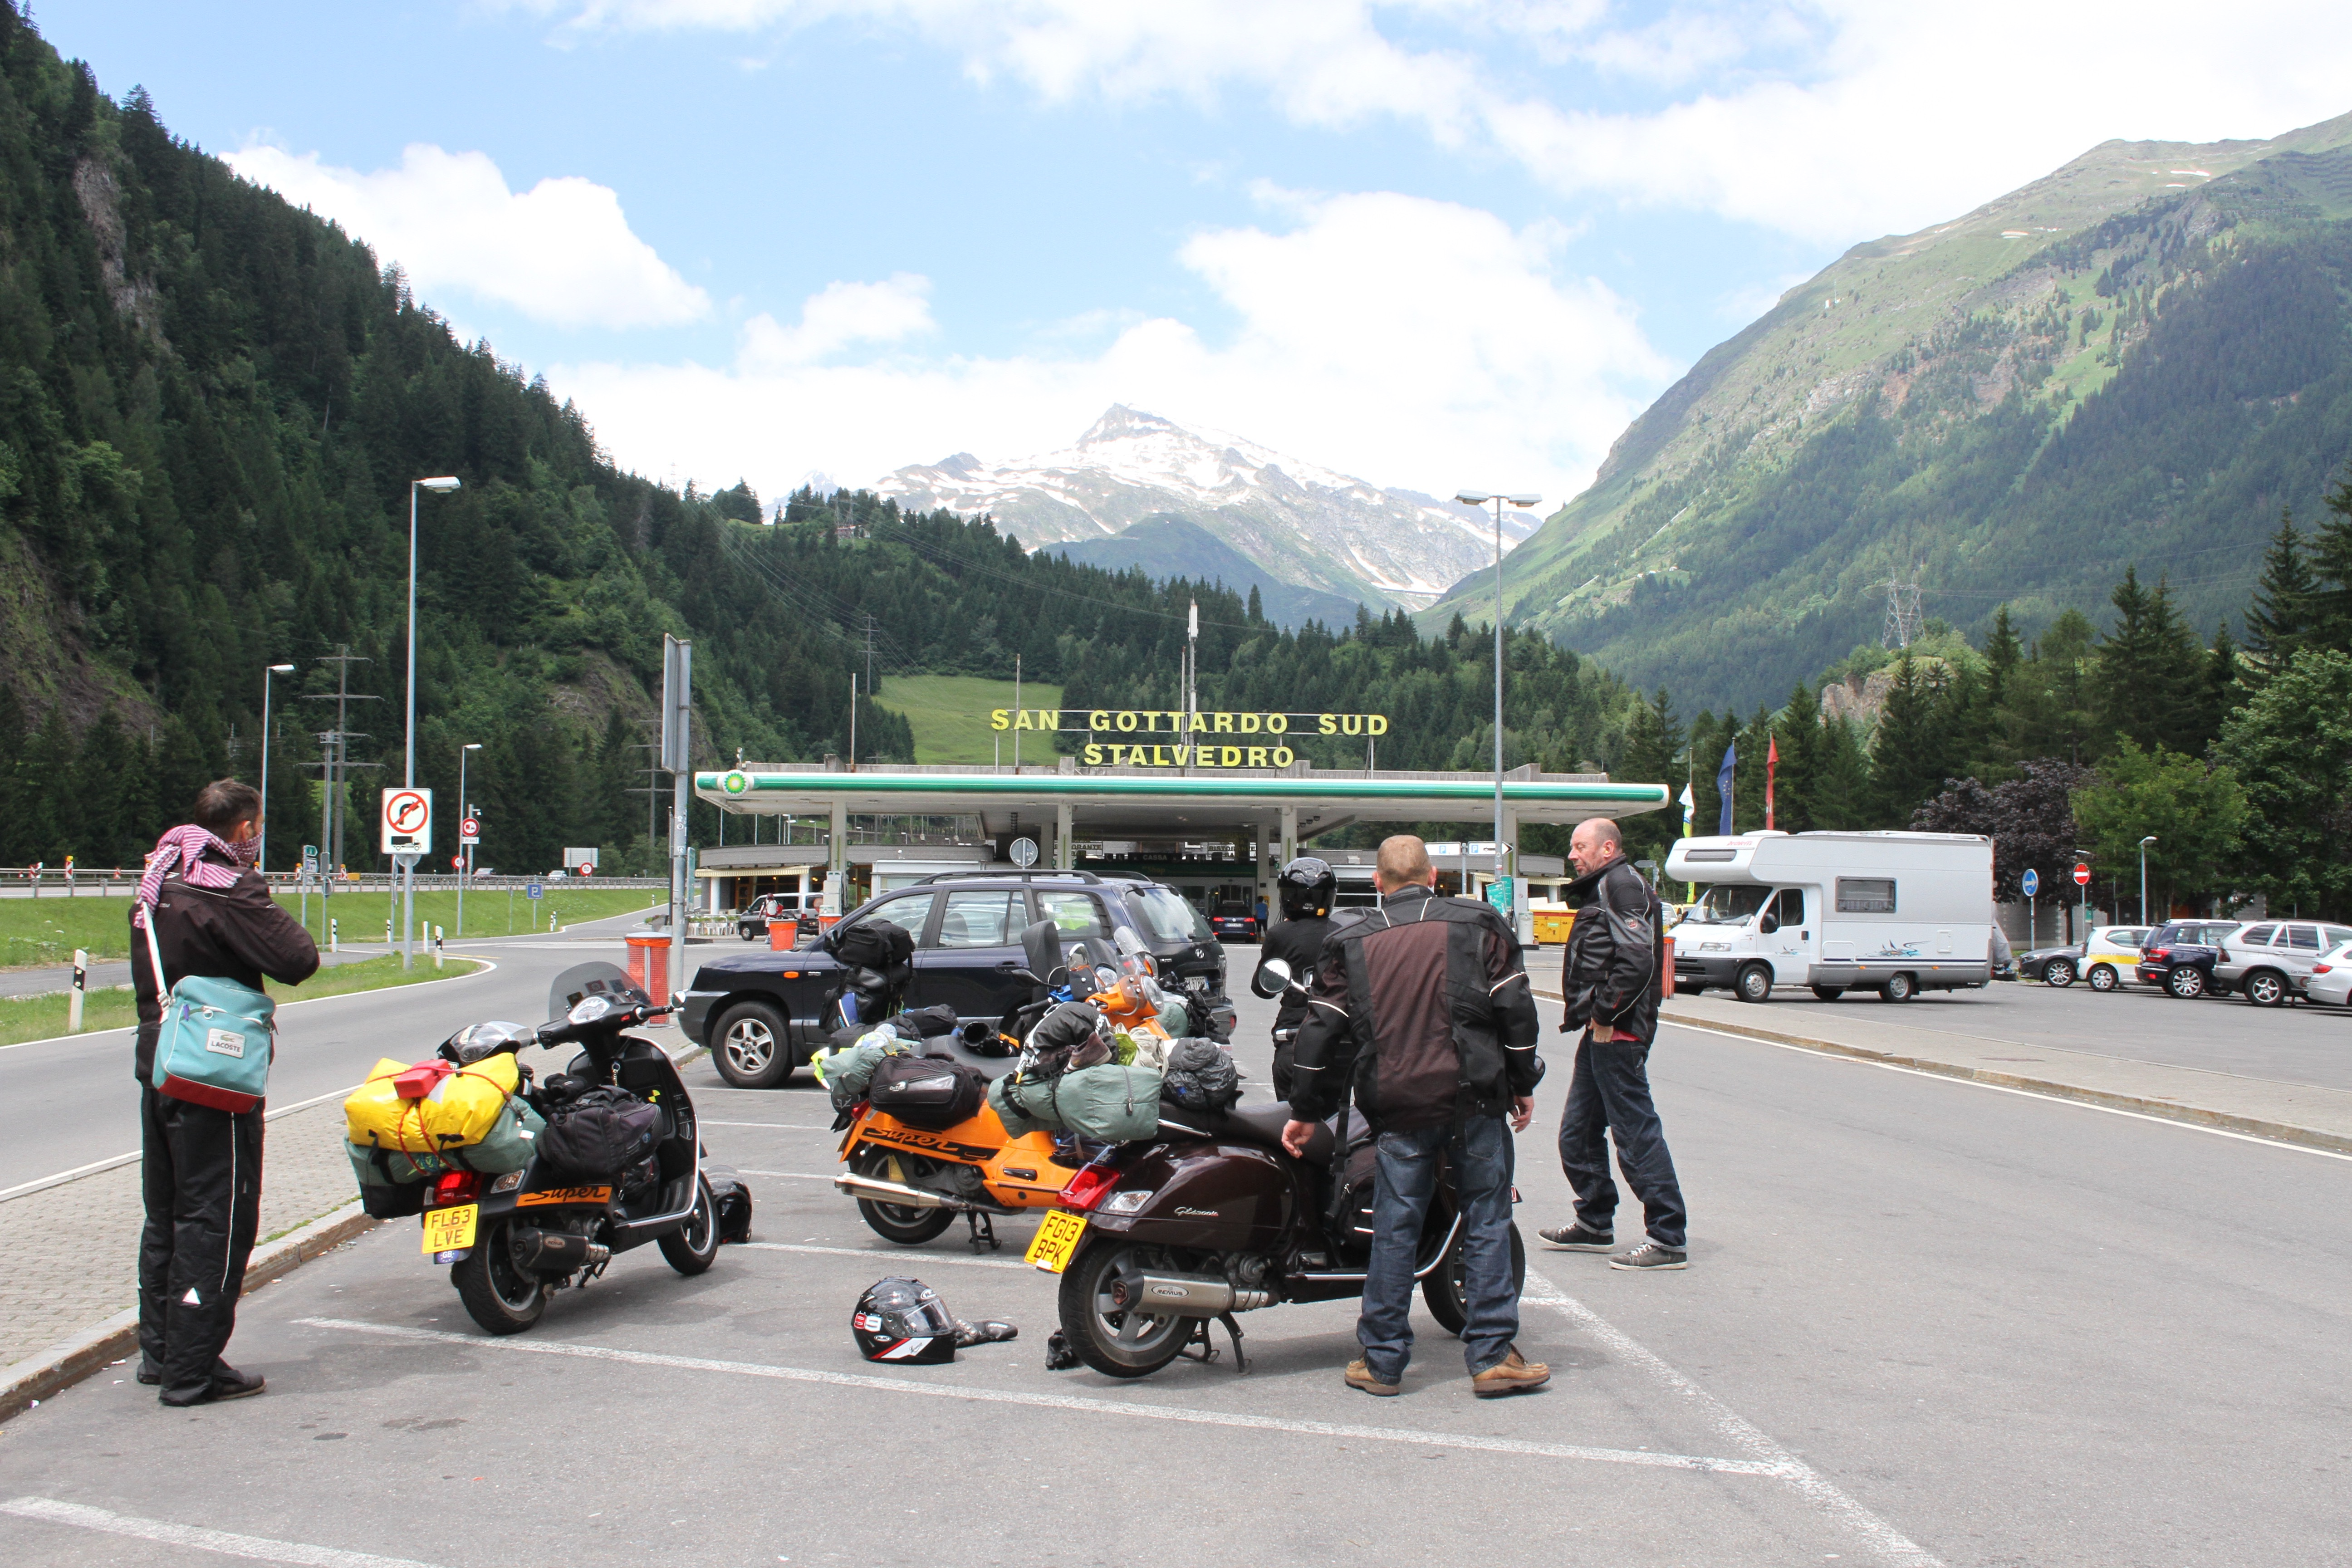 Fuel stops in Switzerland reminds me of Toddington services on the M1